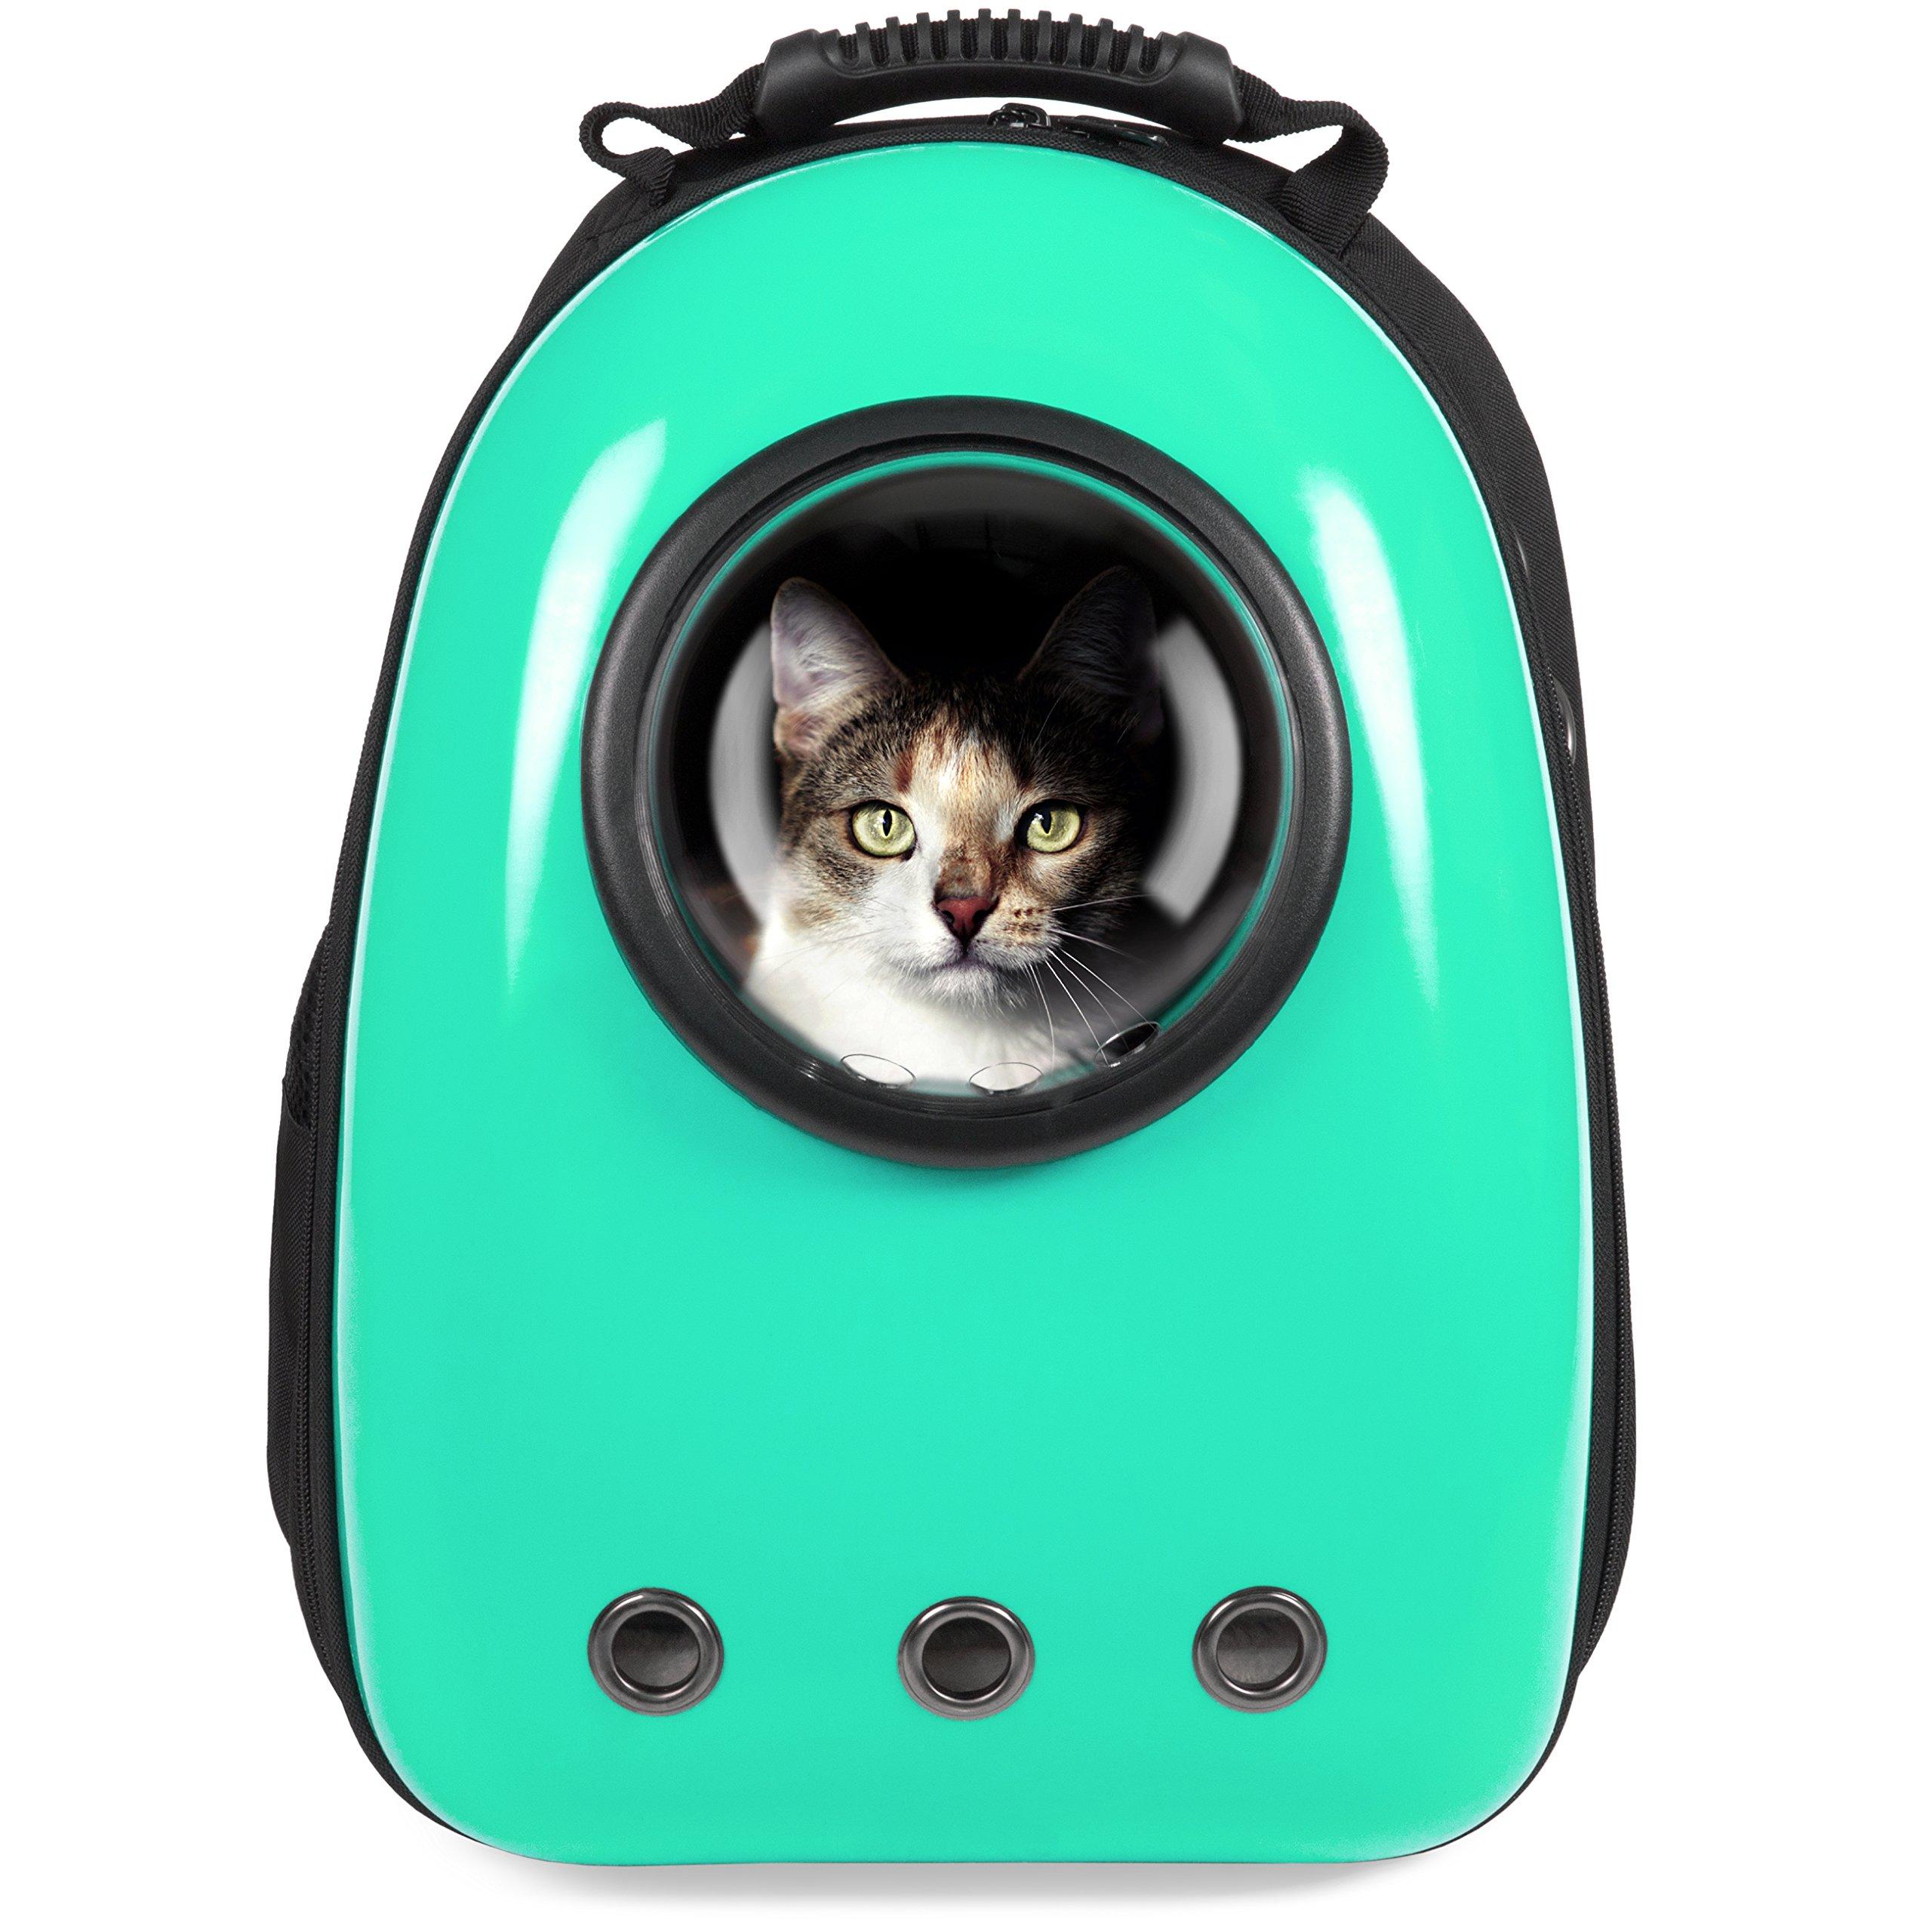 Best Choice Products Traveler Bubble Window Backpack Pet Carrier for Cats and Dogs - Teal